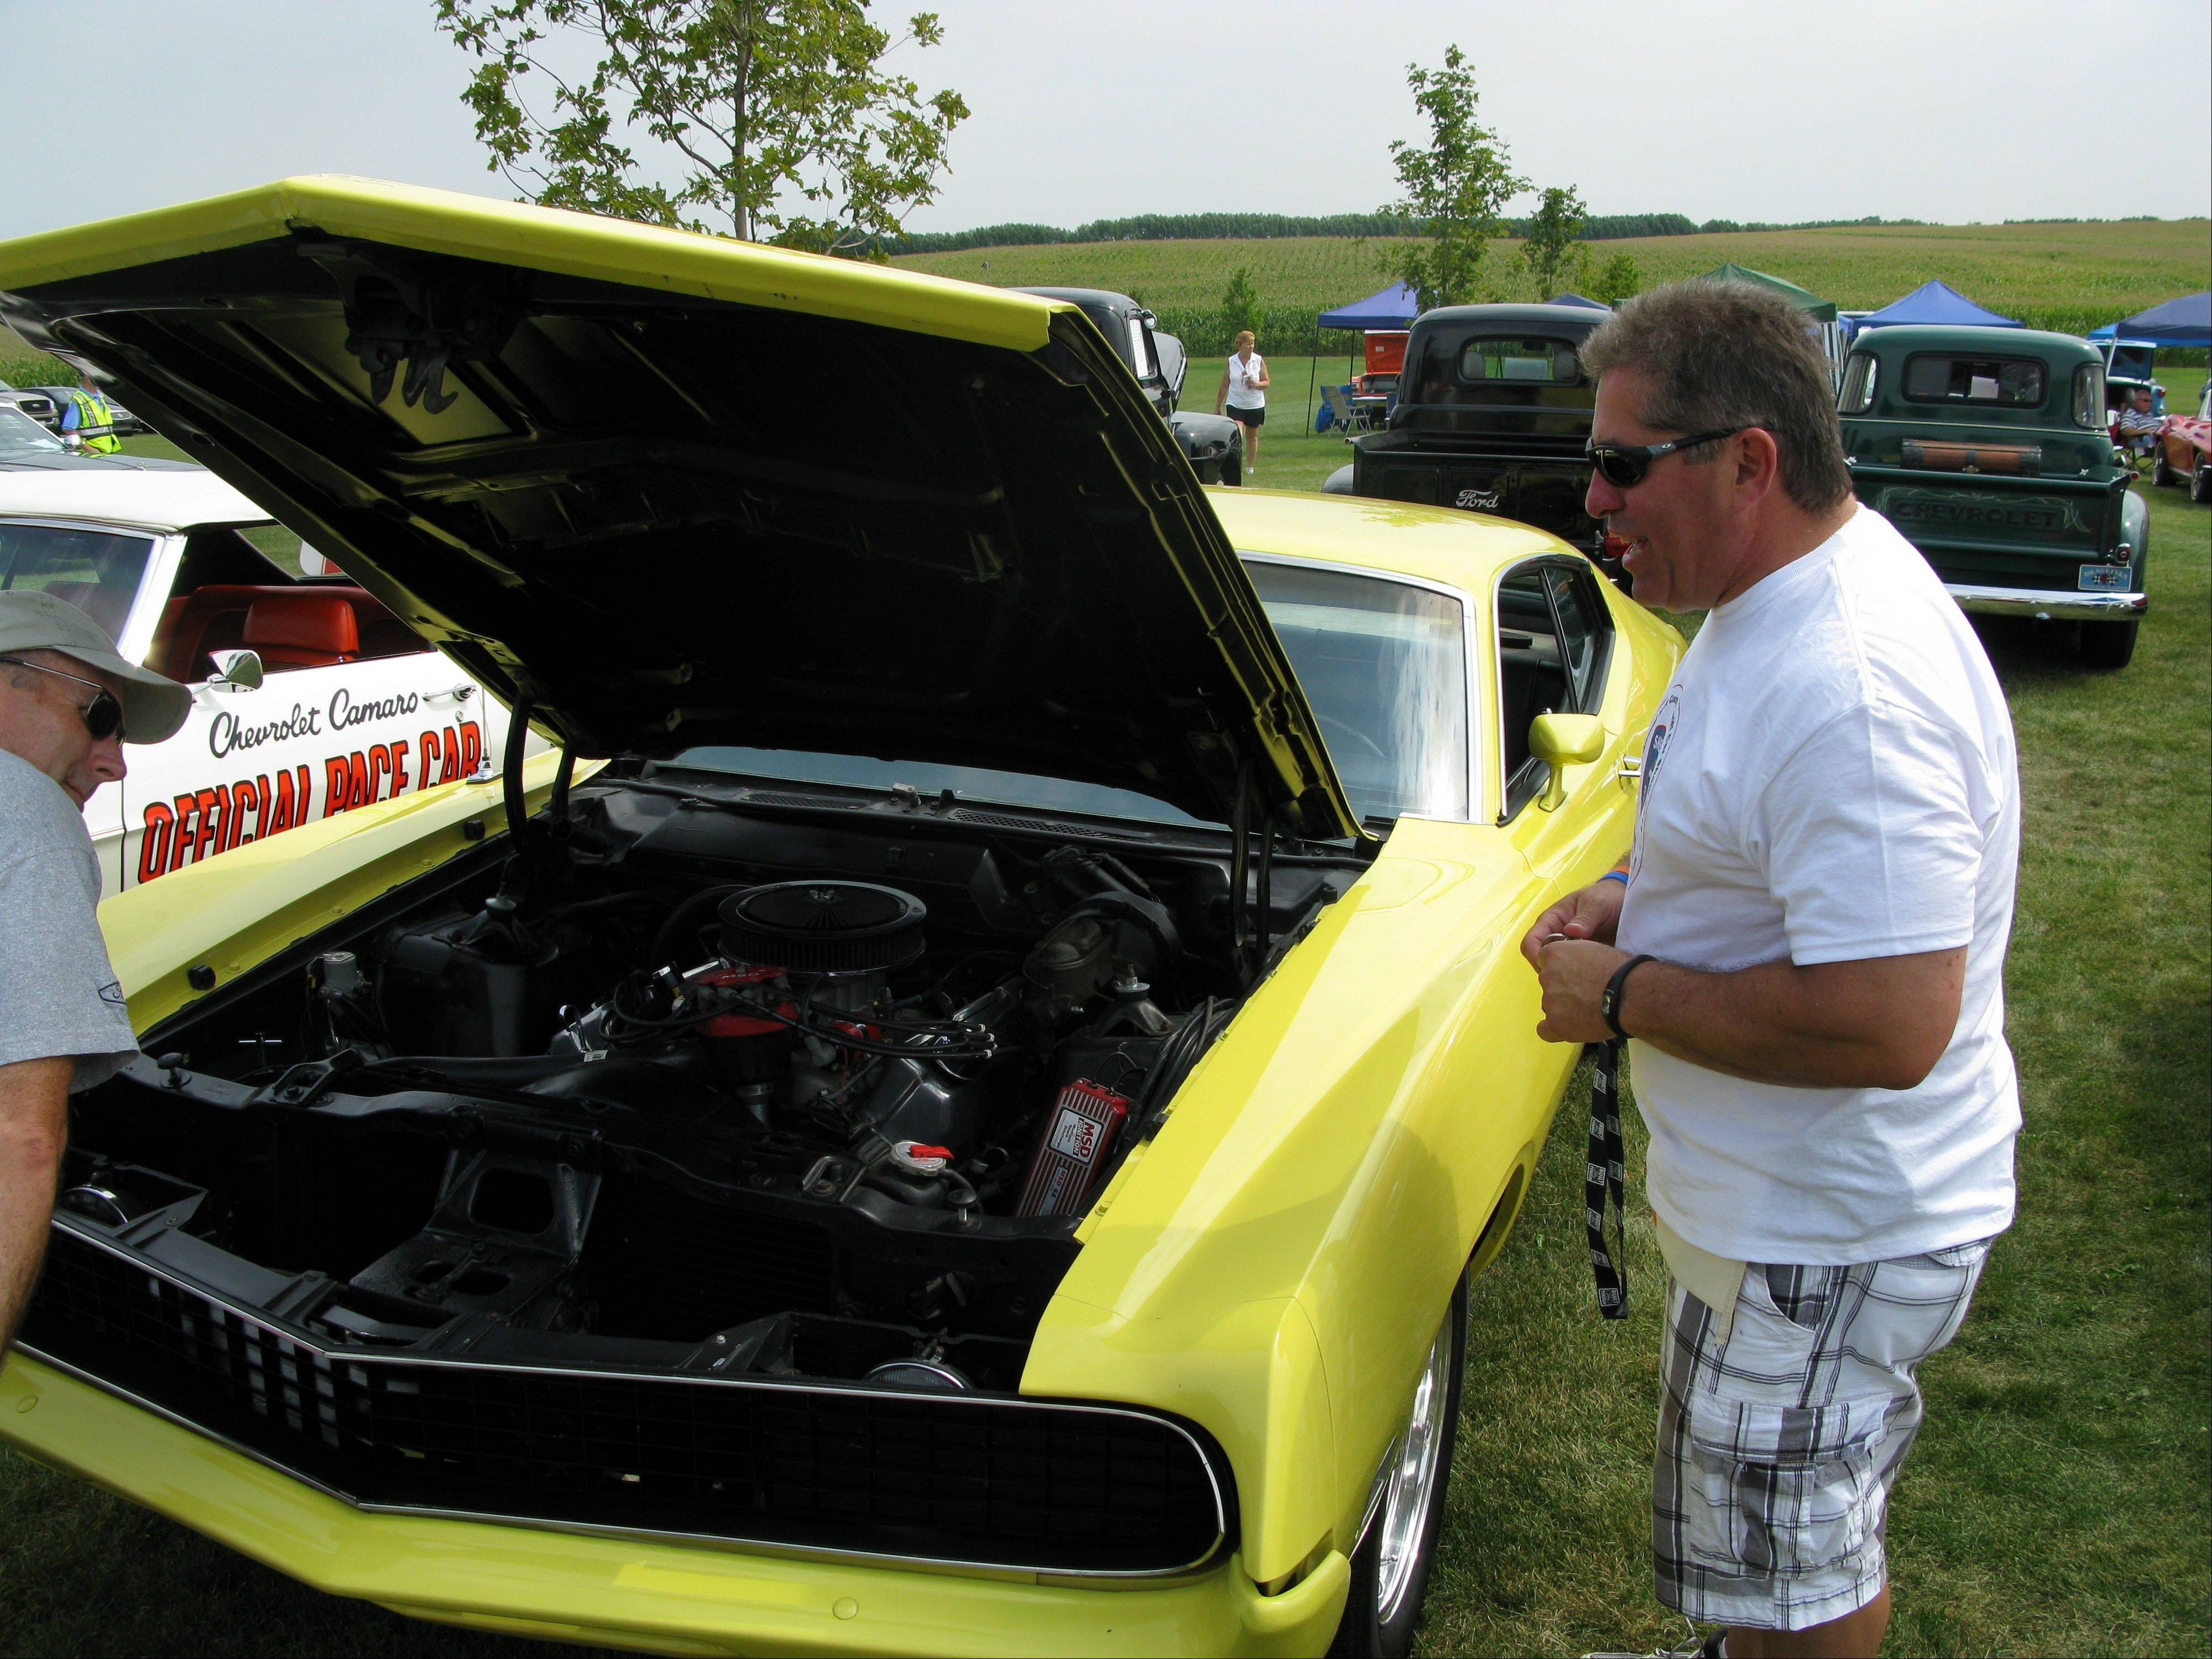 Kane County Sheriff Pat Perez traded stories with fellow classic car buffs last September at his annual car and motorcycle show for charity. Perez, right, is the proud owner of a yellow Ford Torino.